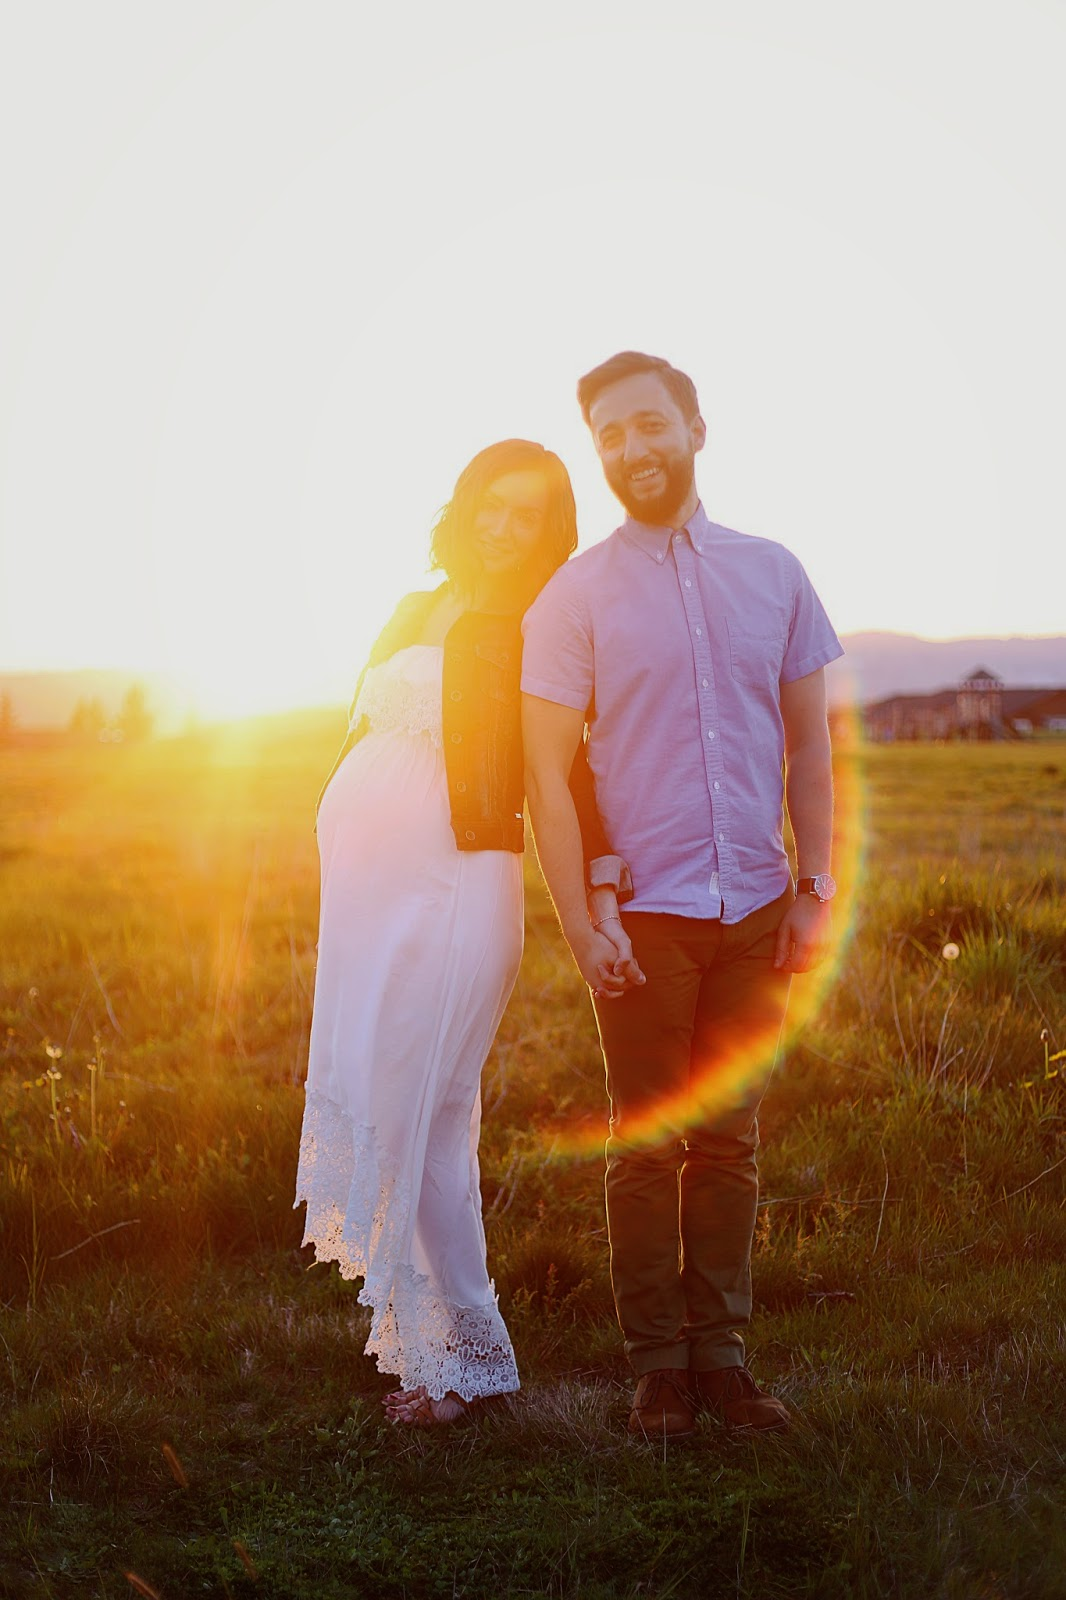 portland oregon maternity session, spotted:stills photography, baby, studio, natural light, jenn pacurar, portland sunset